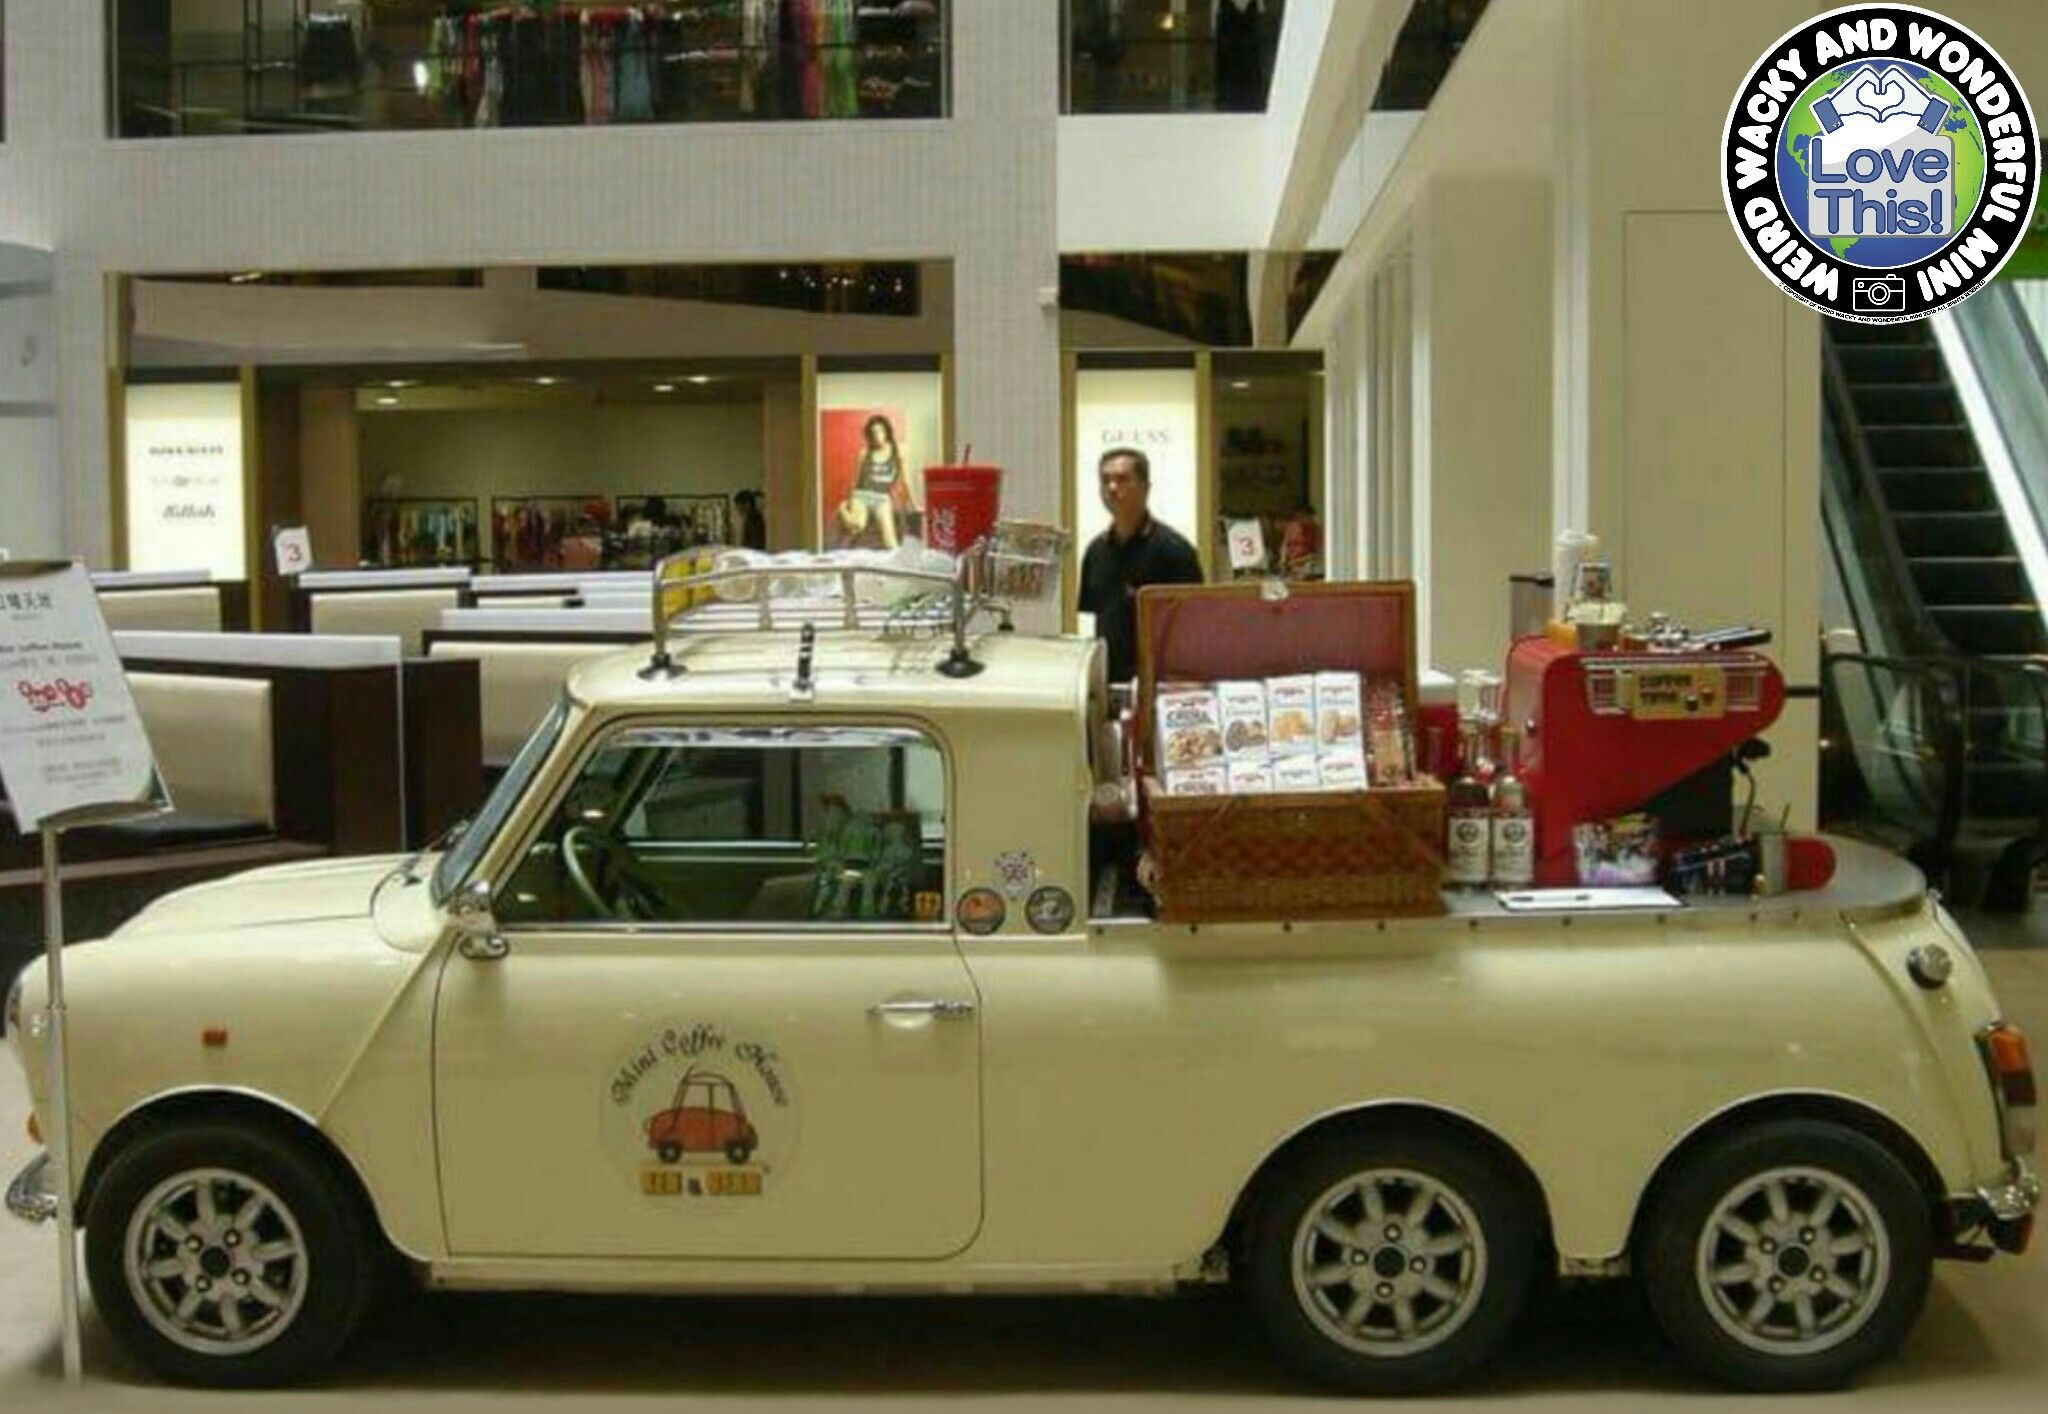 Mornin Miniacs Really really could do with this wicked 6 wheeled Mini Coffee Bar paying a visit to WWWMini Towers this morning... need strong coffee... very strong coffee... Have a great day folks